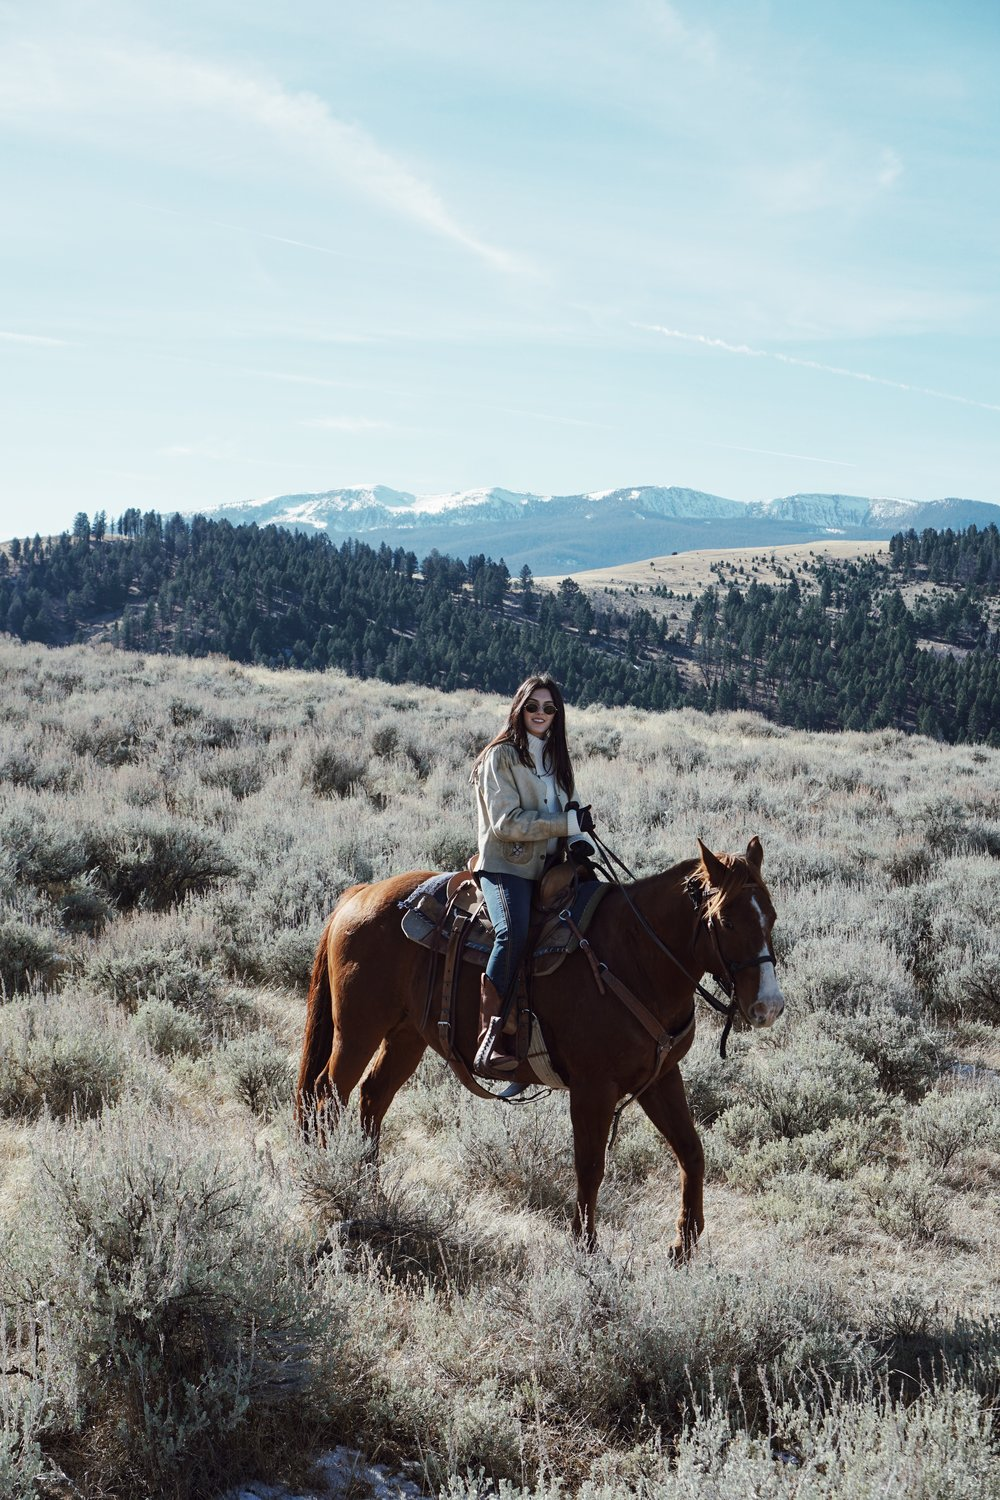 Horseback Riding | The Ranch at Rock Creek | A New Kind Of Paradise by Julia Friedman